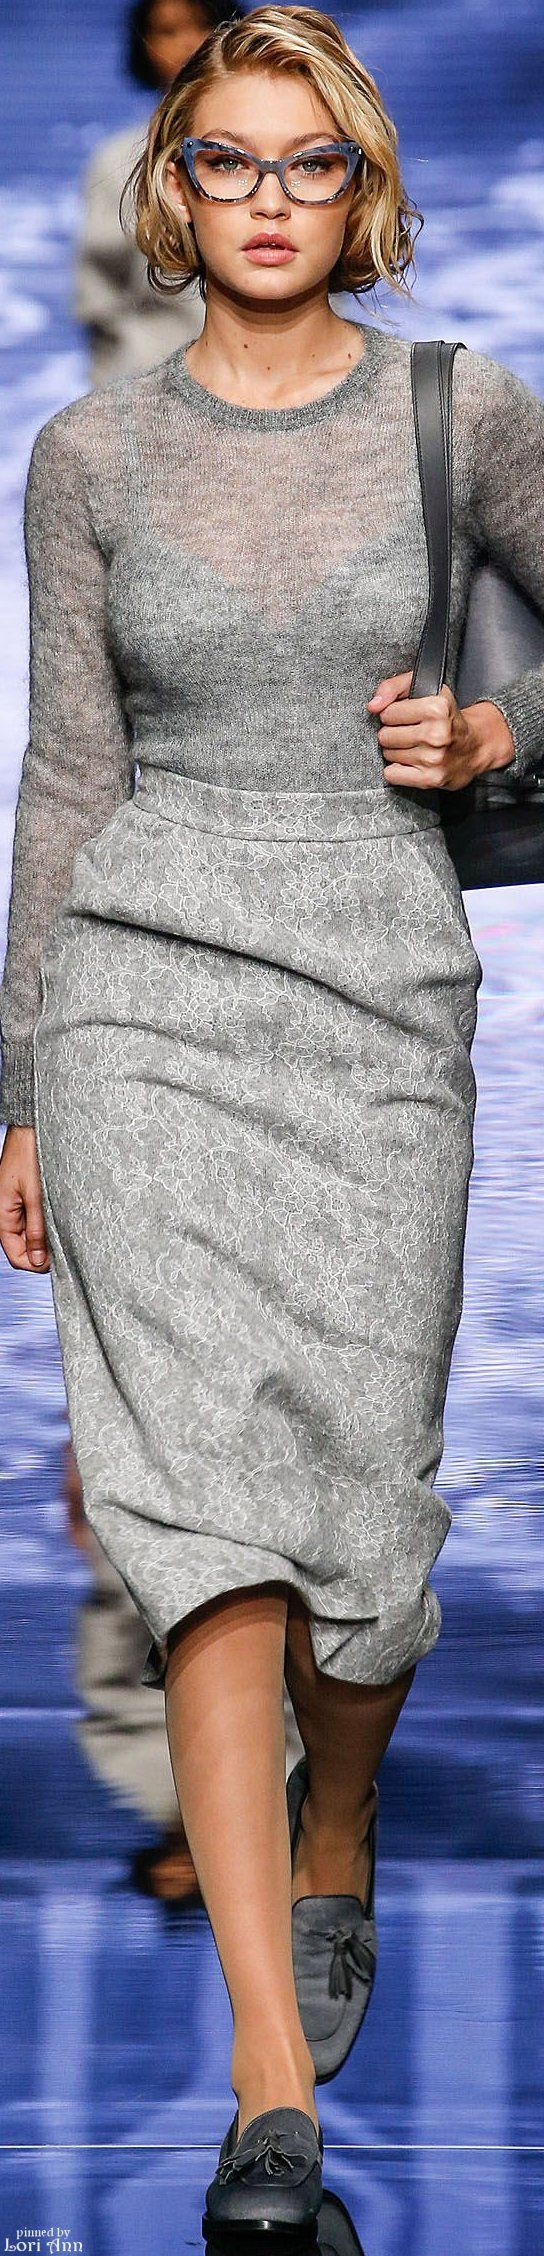 Max Mara.           Fall 2015.          Ready-To-Wear.        I Love The Glasses! And the hair cut.